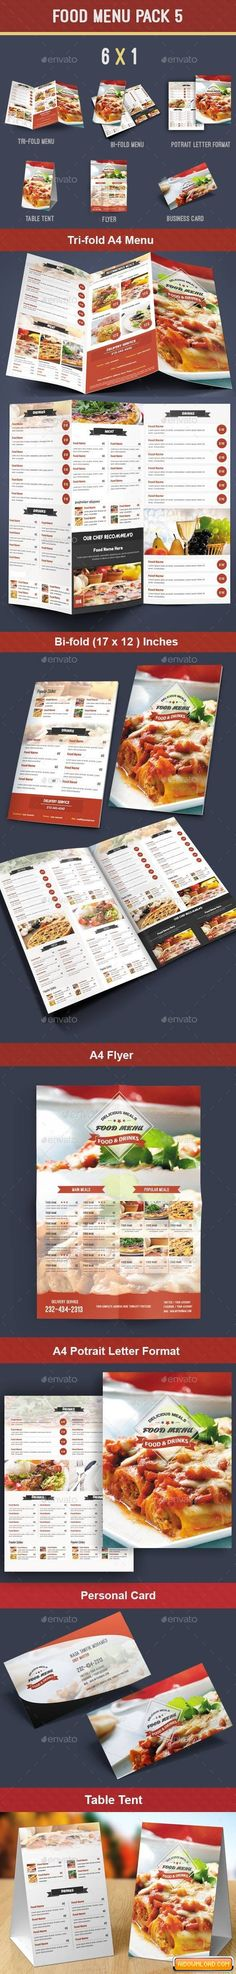 Food Menu Pack 5 Free Download | Free Graphic Templates, Fonts, Logos & Icons, PSD, AI